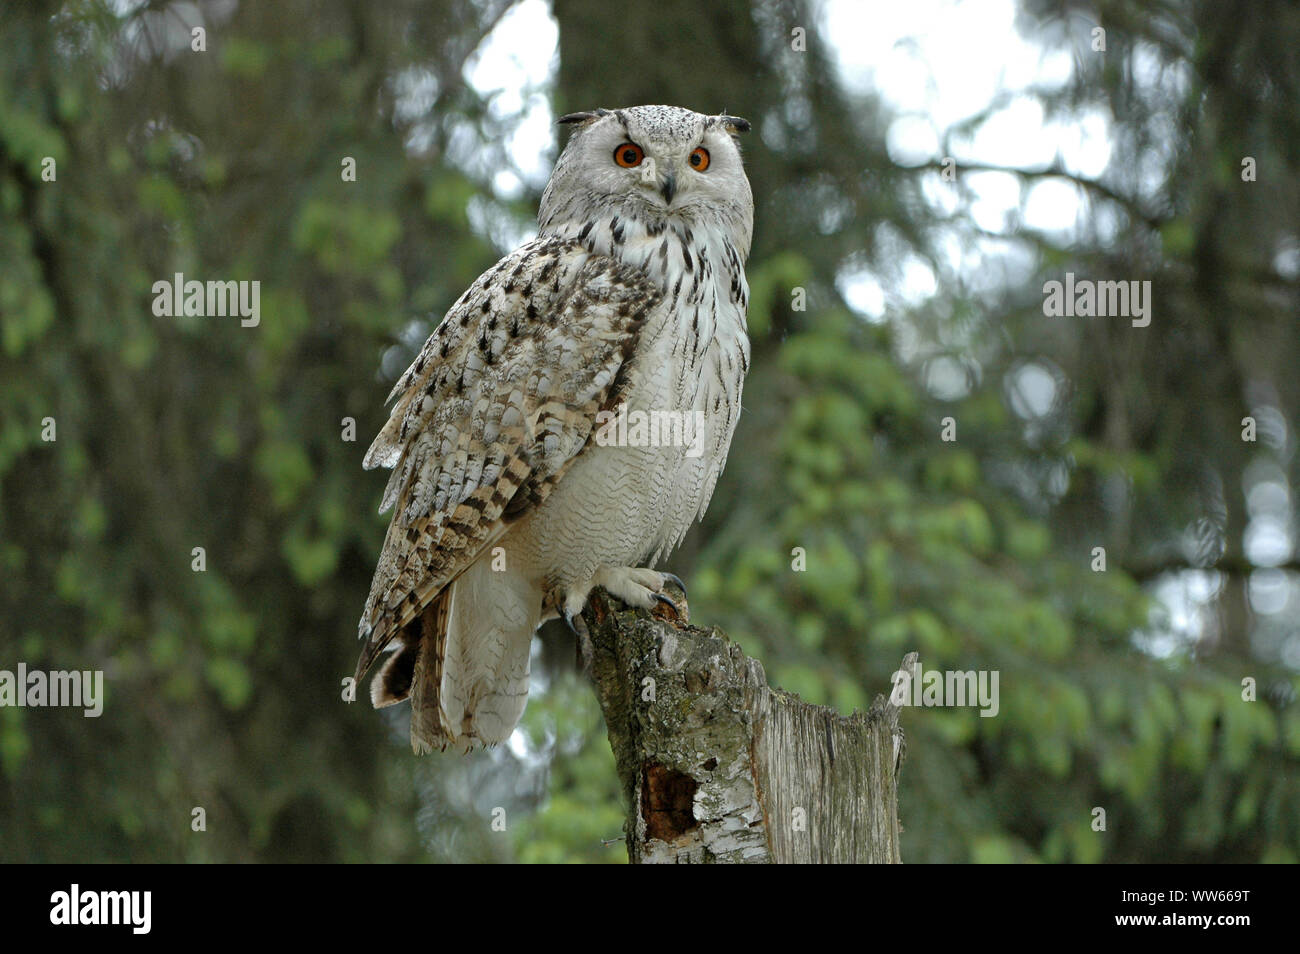 Siberian eagle-owl in the forest, bubo bubo sibiricus Stock Photo